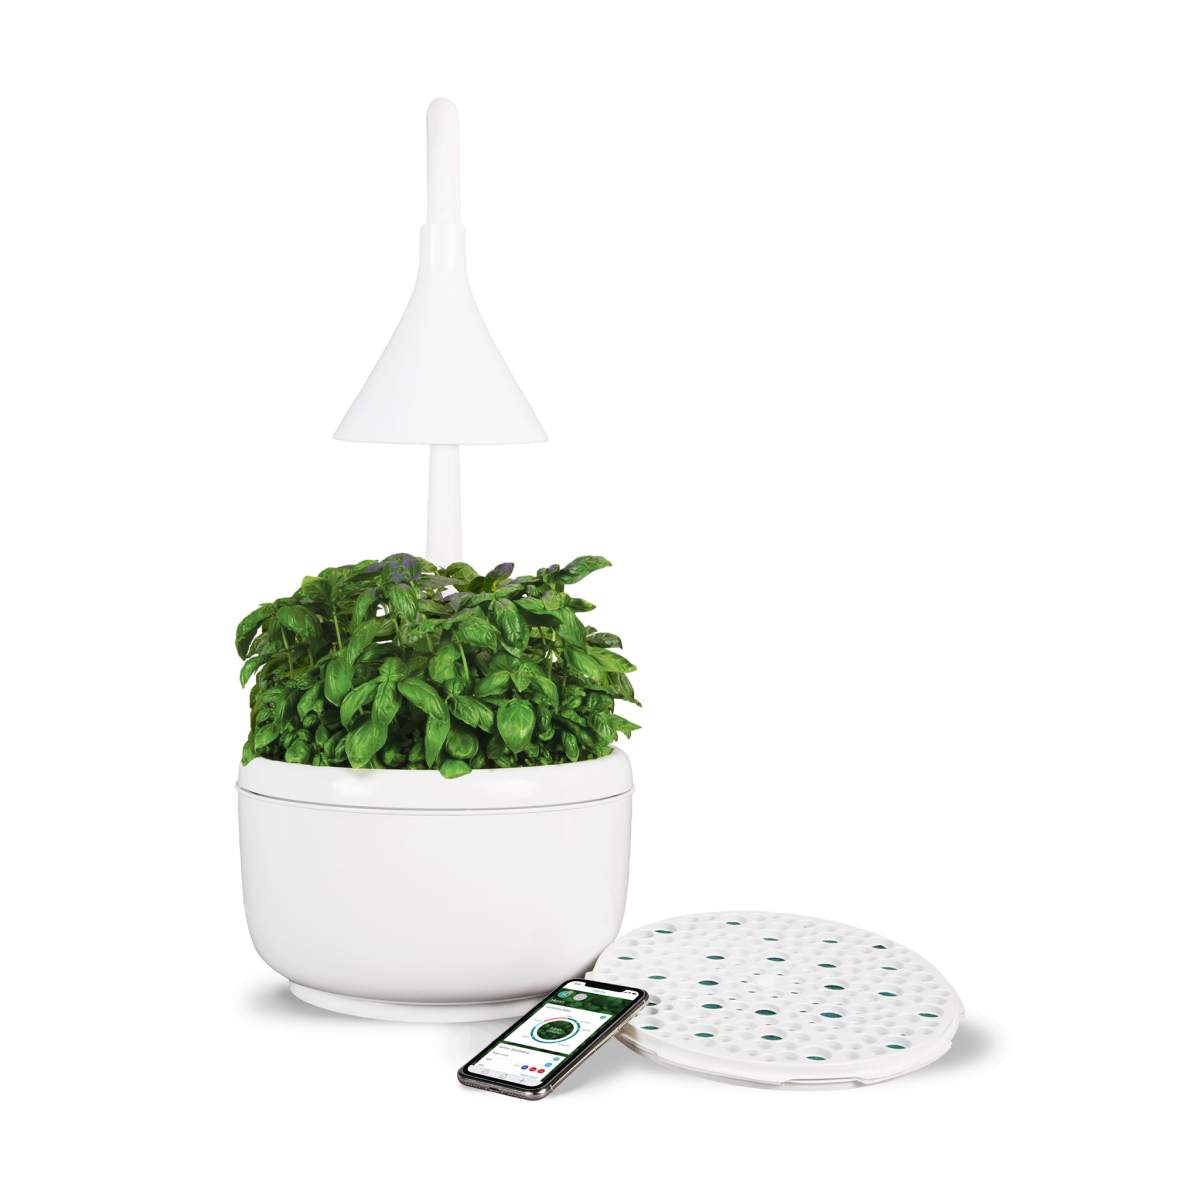 SproutsIO Smart Microgarden